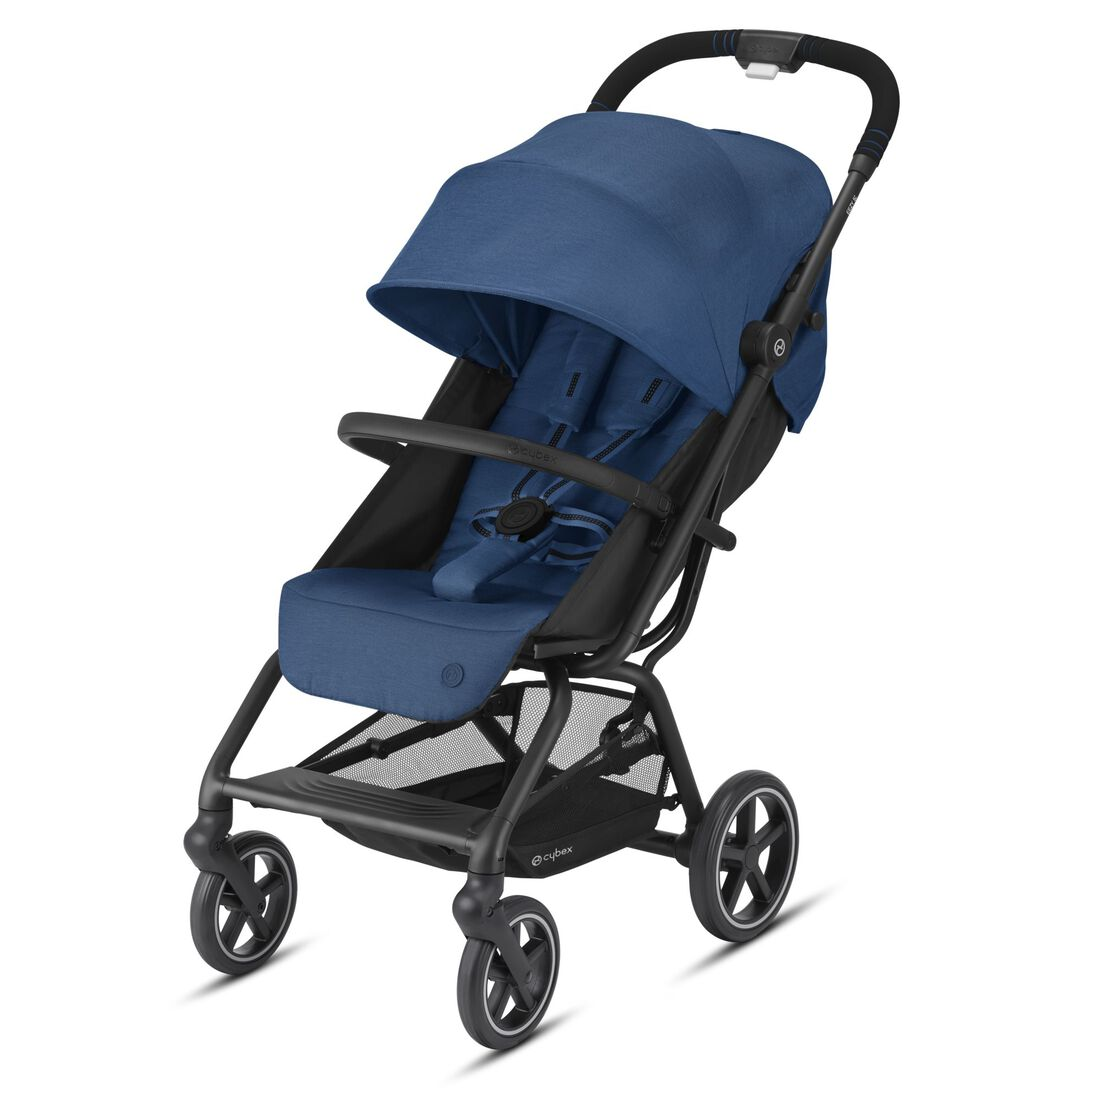 CYBEX Eezy S+2 - Navy Blue in Navy Blue large image number 1